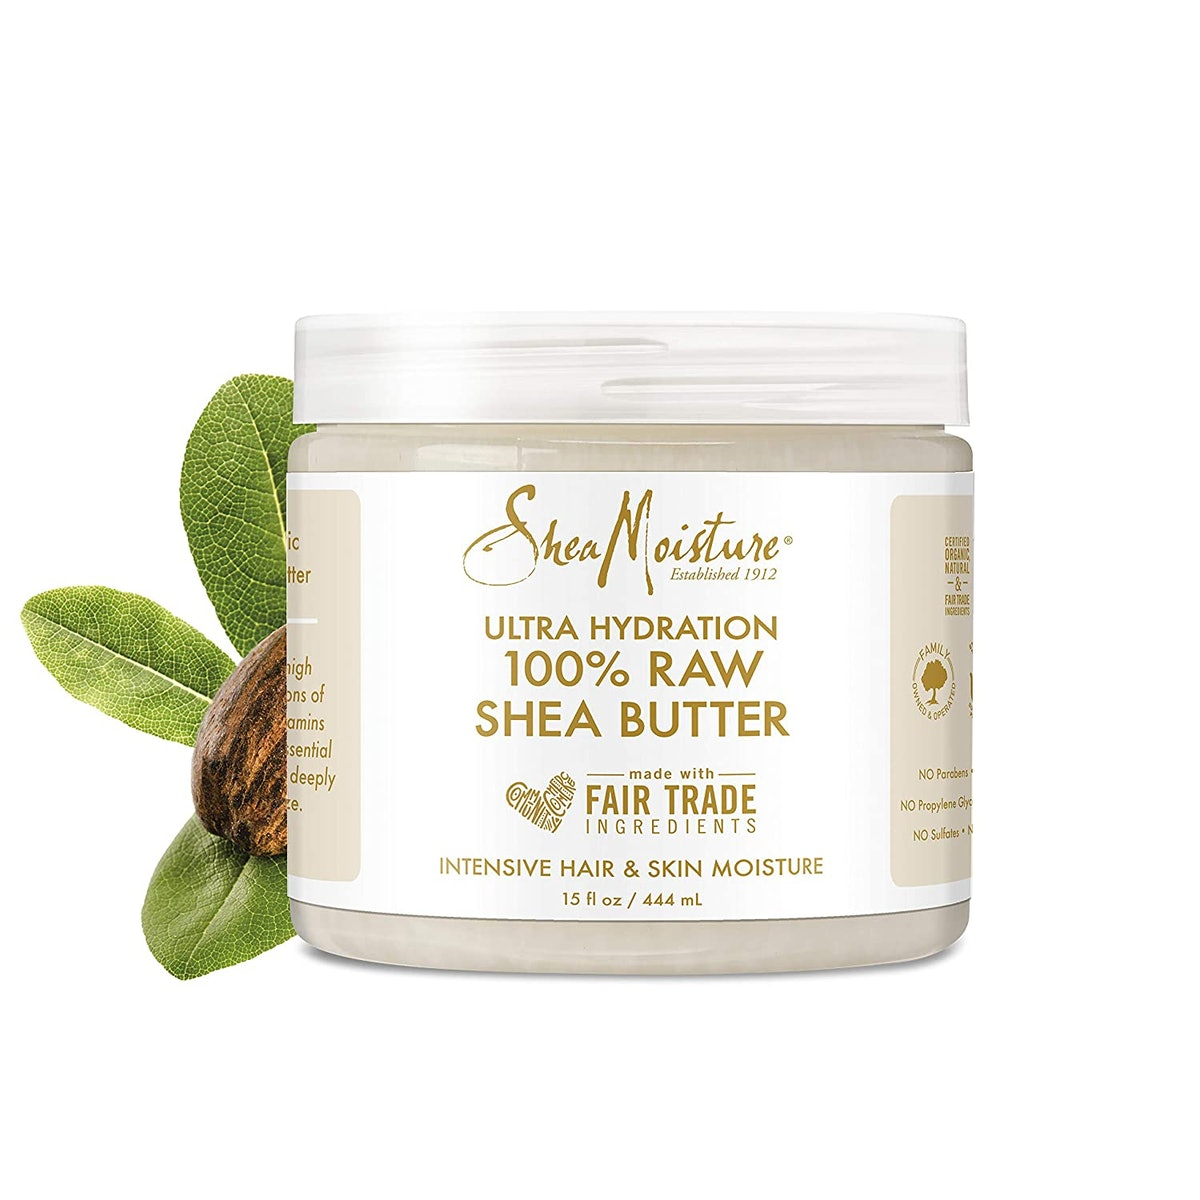 SheaMoisture All-Over Hydration Body Lotion